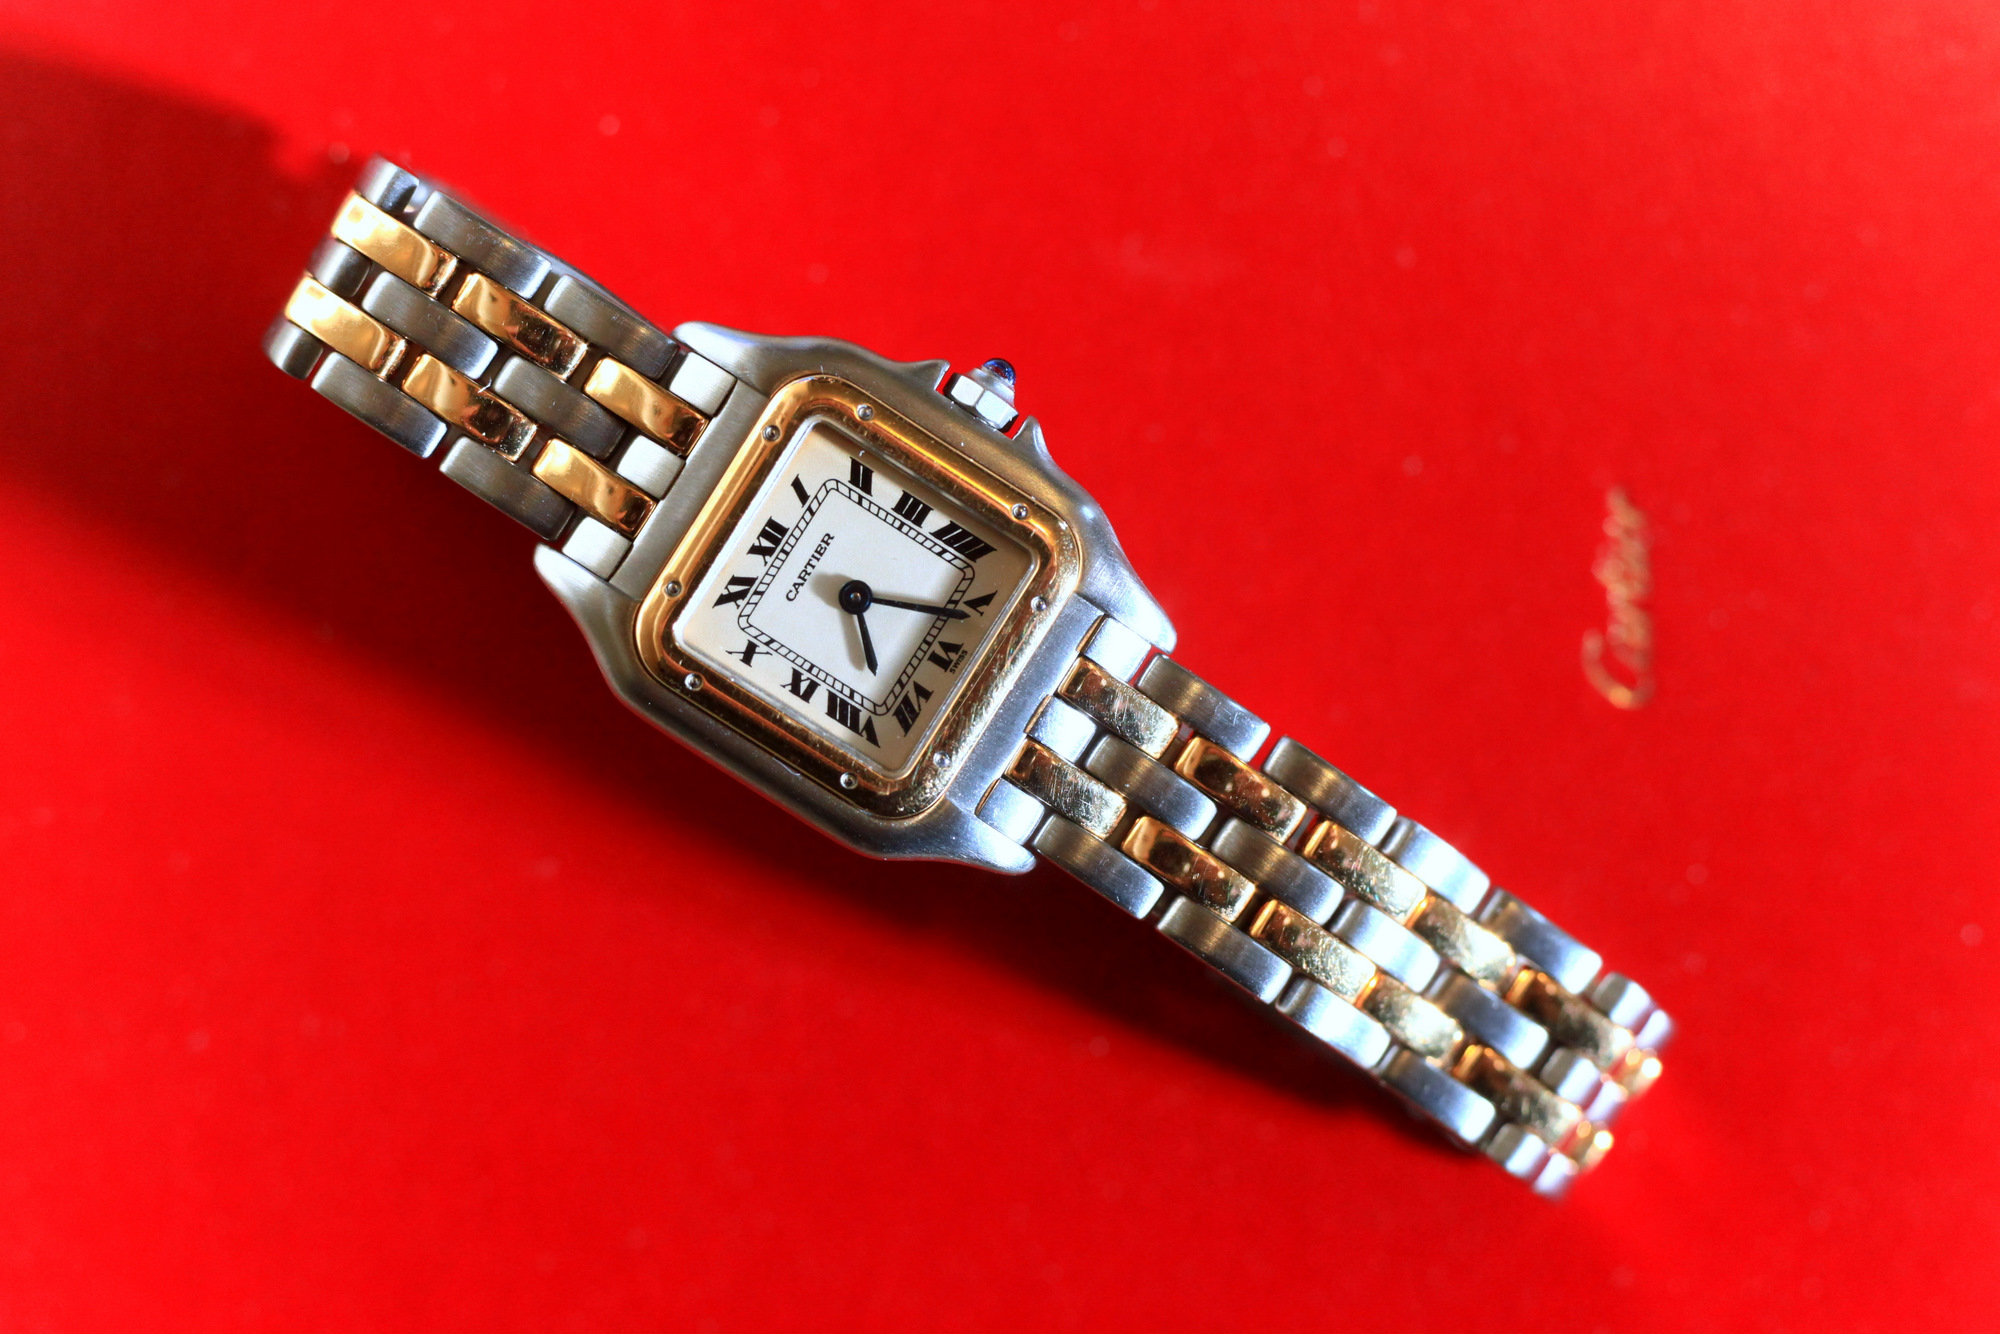 Cartier Panthere Watch History